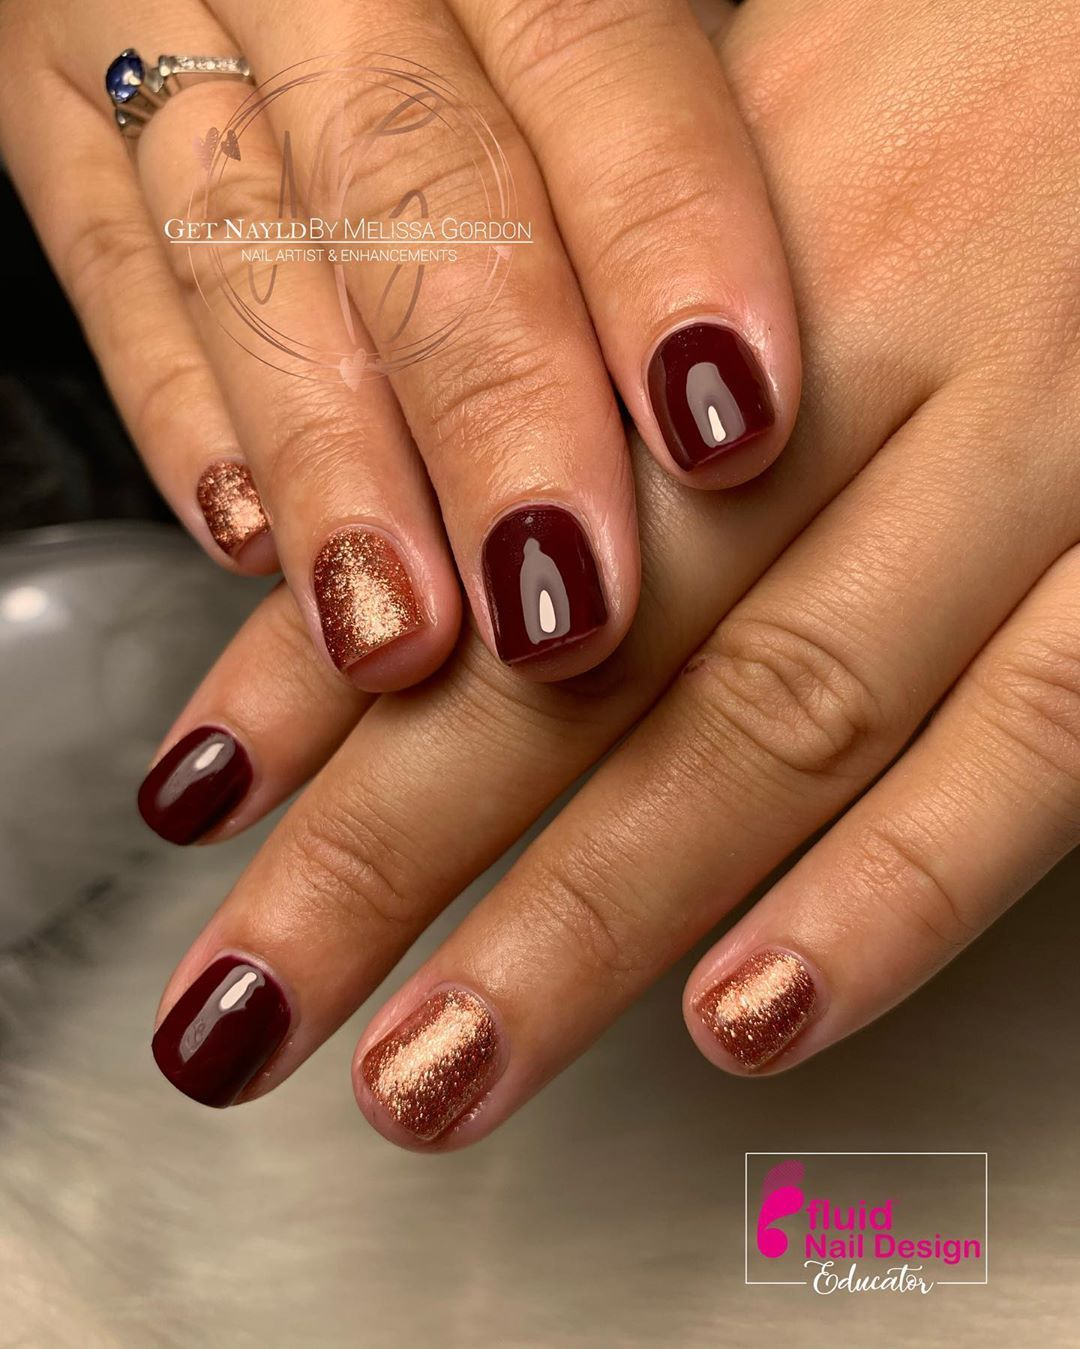 Builder gel manicure . . Are you a studying or qualified